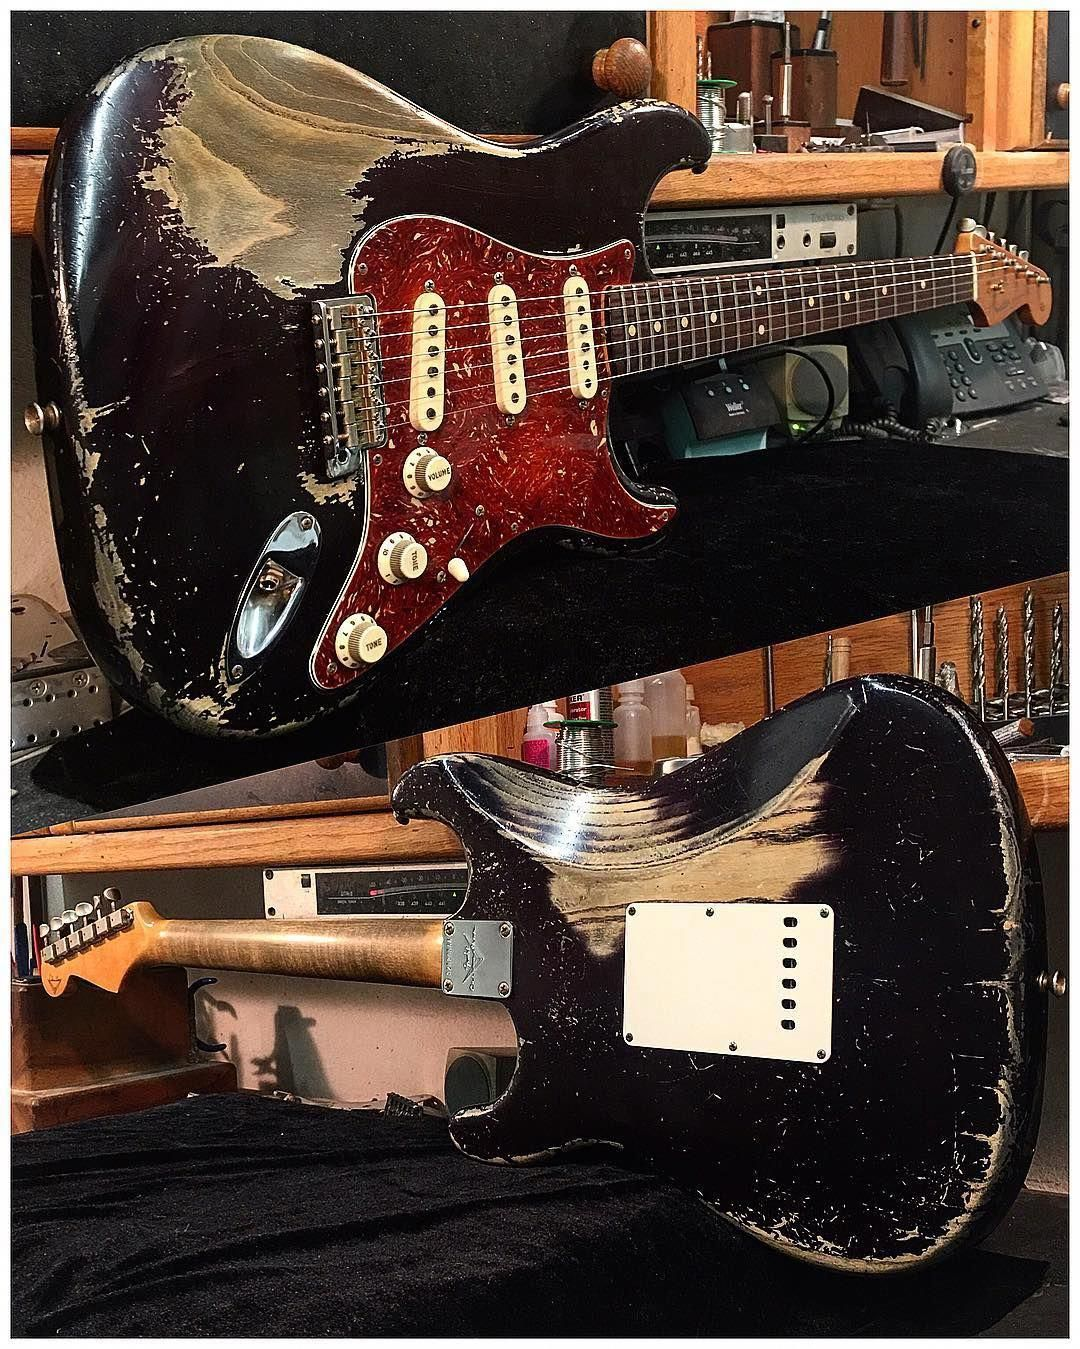 looking for a guitar check this out fenderstratocaster wow electric guitars in 2019. Black Bedroom Furniture Sets. Home Design Ideas